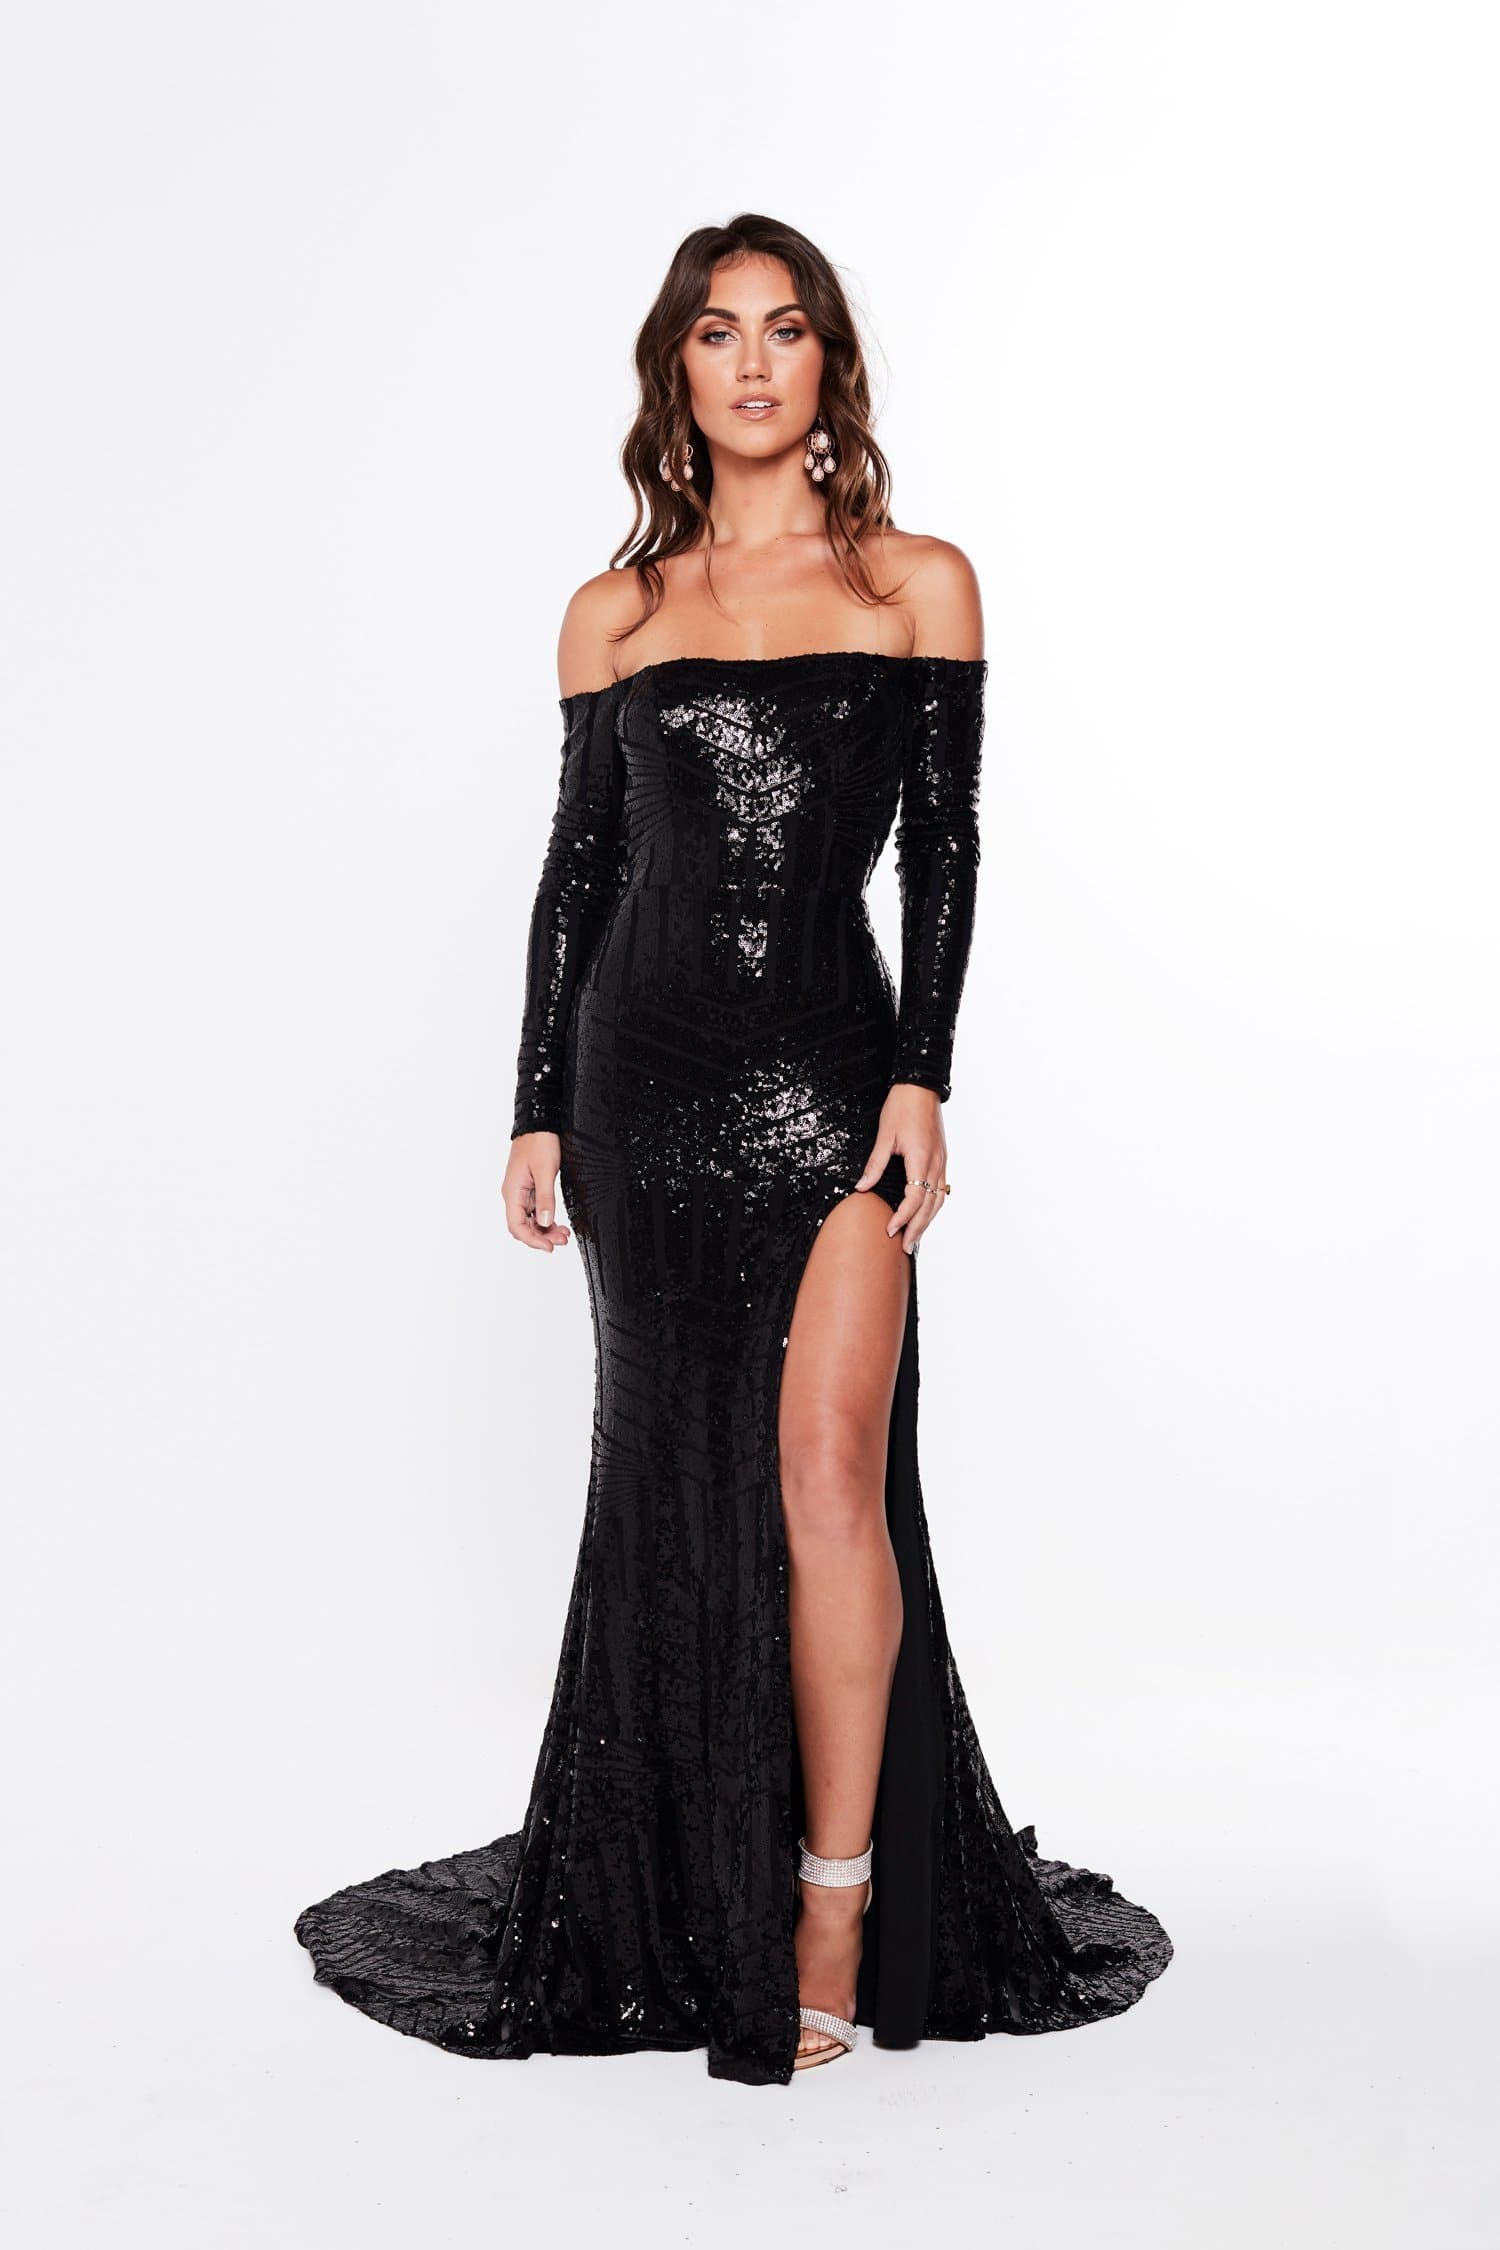 A&N Luxe Regina Offshoulder Gown - Black